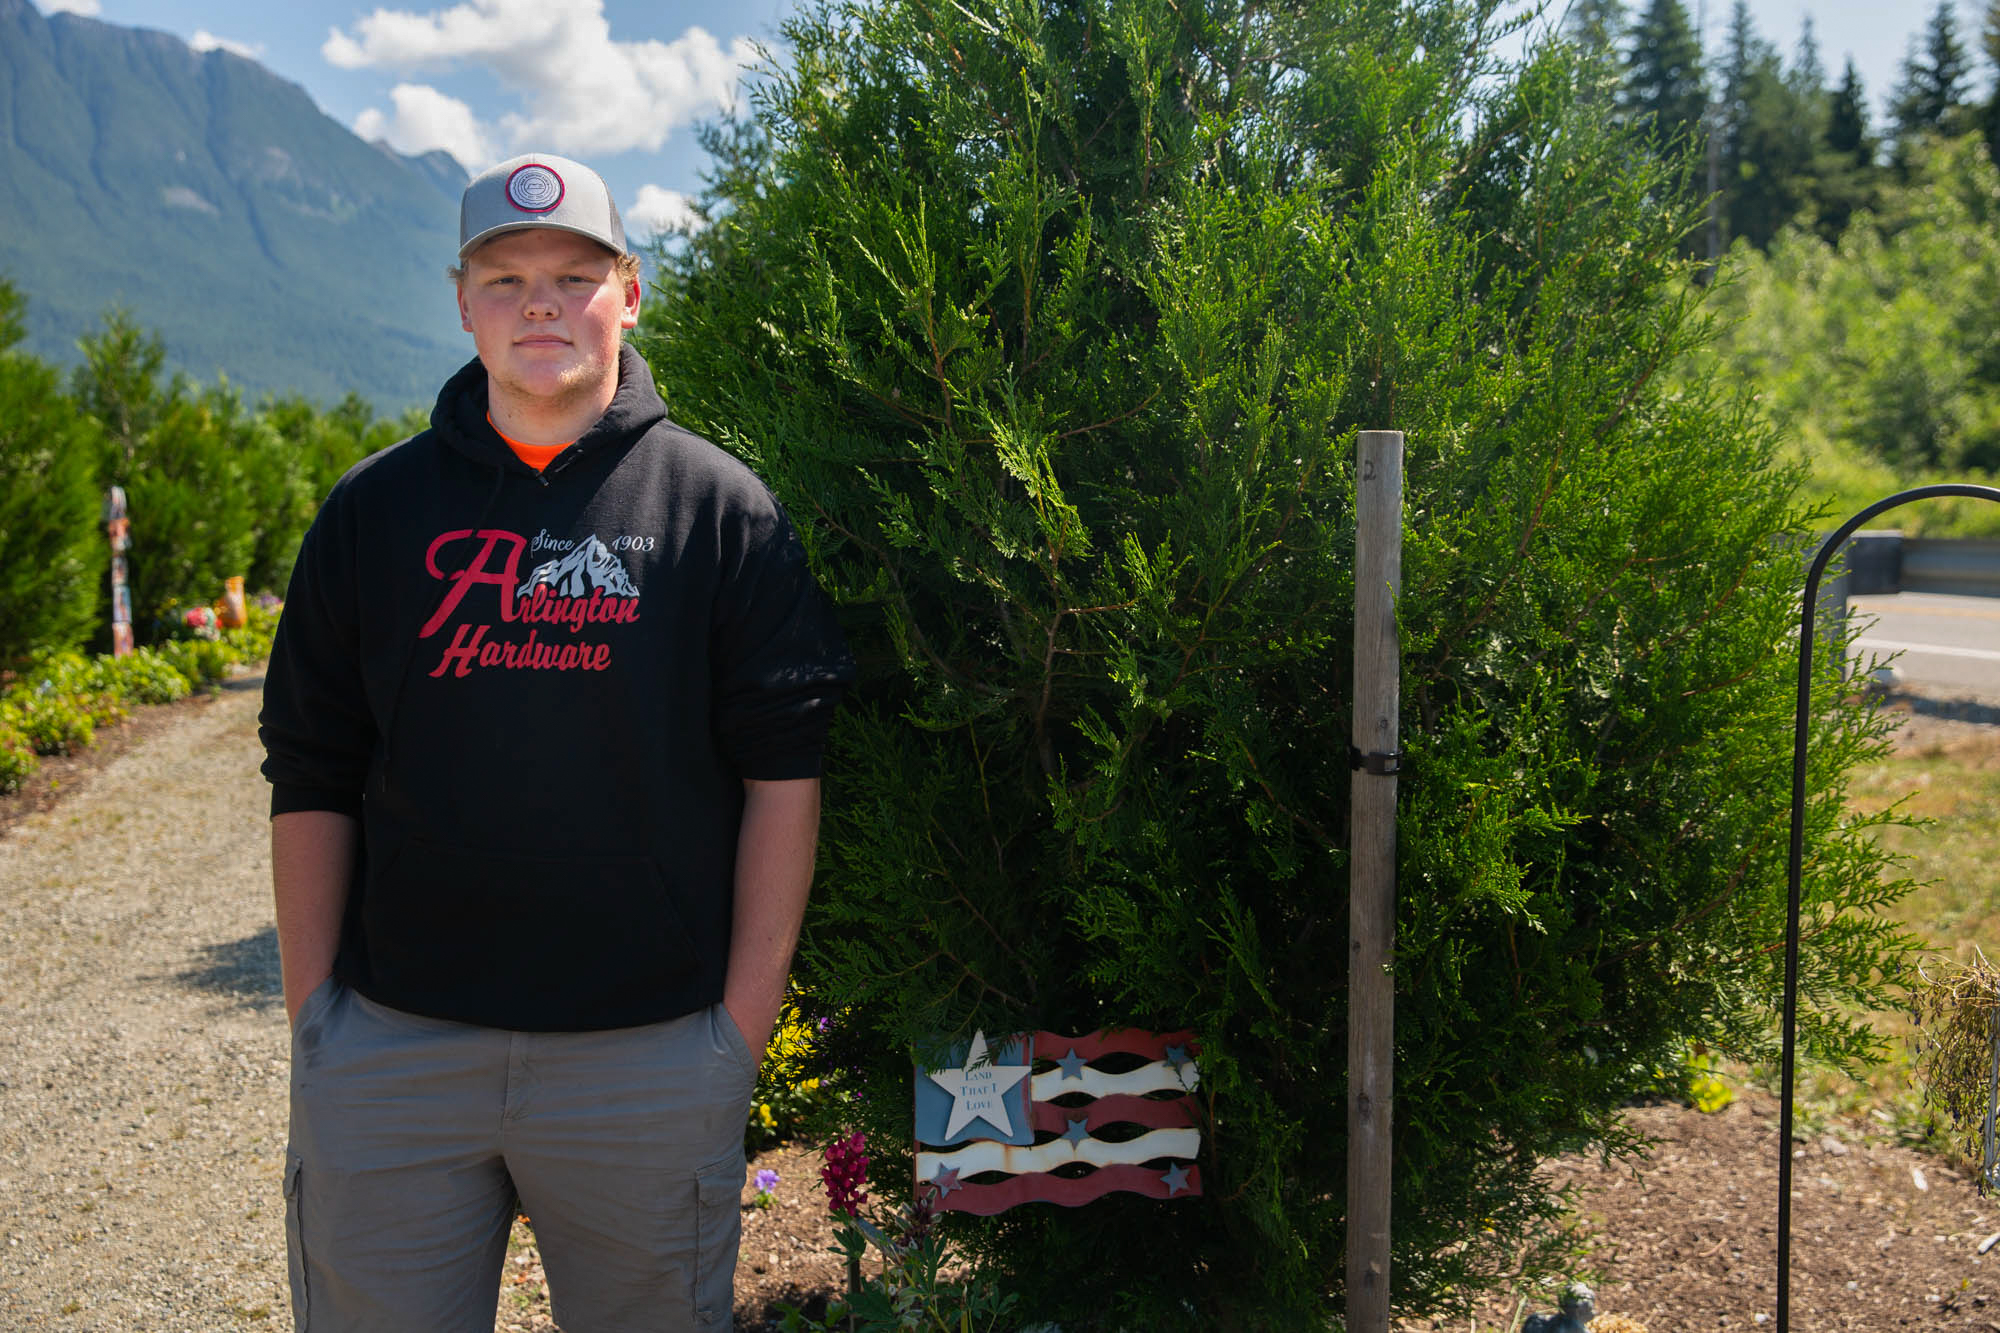 Quinton Kuntz - Quinton Kuntz stands by a tree planted in memory of his great-aunt, one of 43 residents of Oso, Washington, who died in a landslide. Kuntz was in high school at the time and missed the slide by a few hours because his baseball team had a game. (Allie Barton/News21)